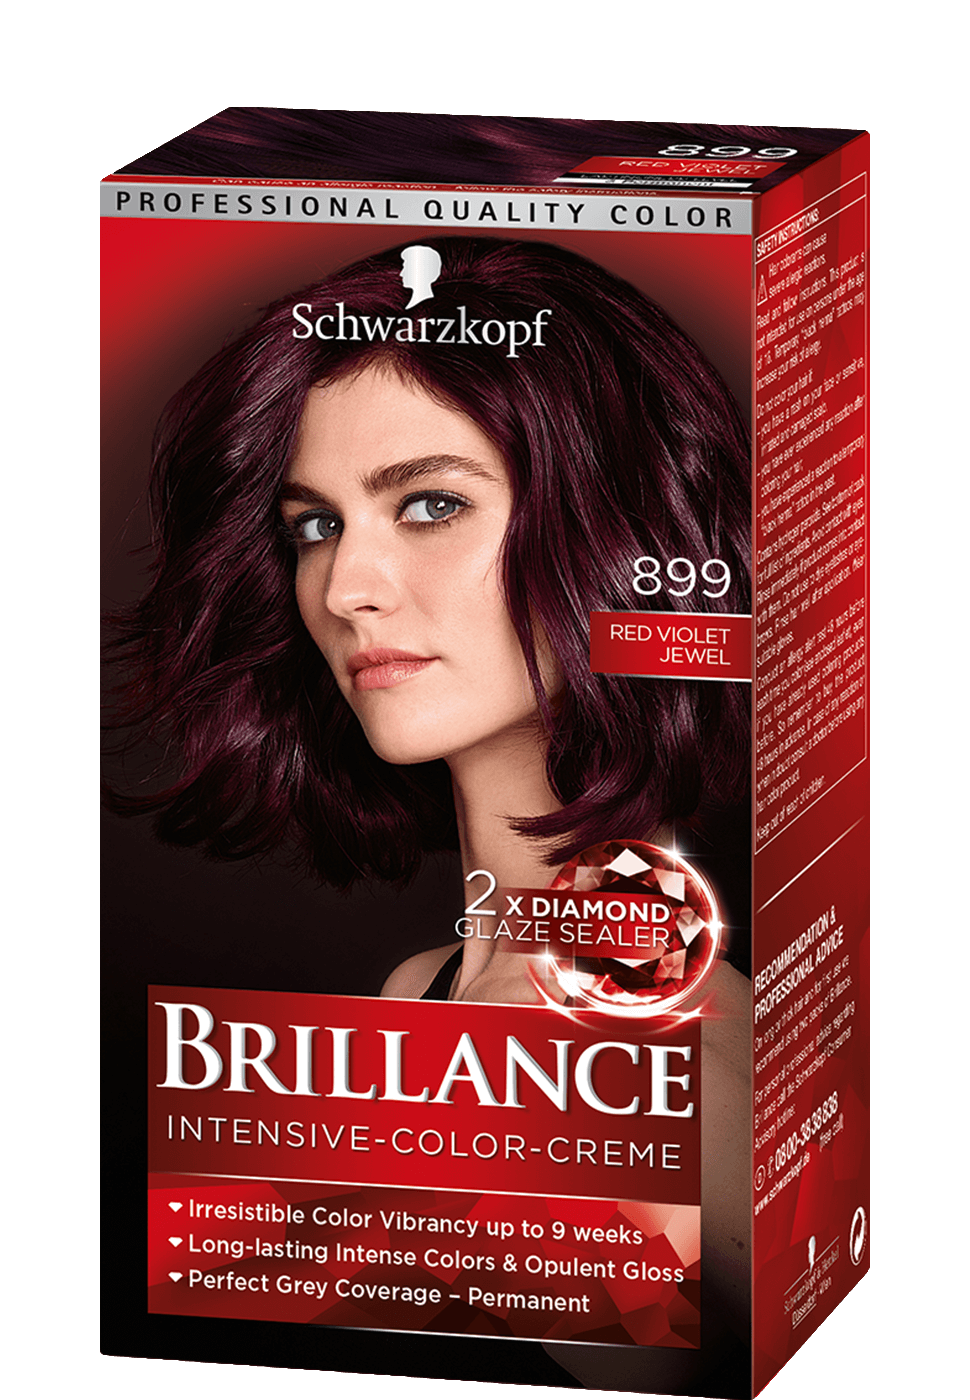 brillance_com_intensive_color_creme_899_red_violet_jewel_970x1400